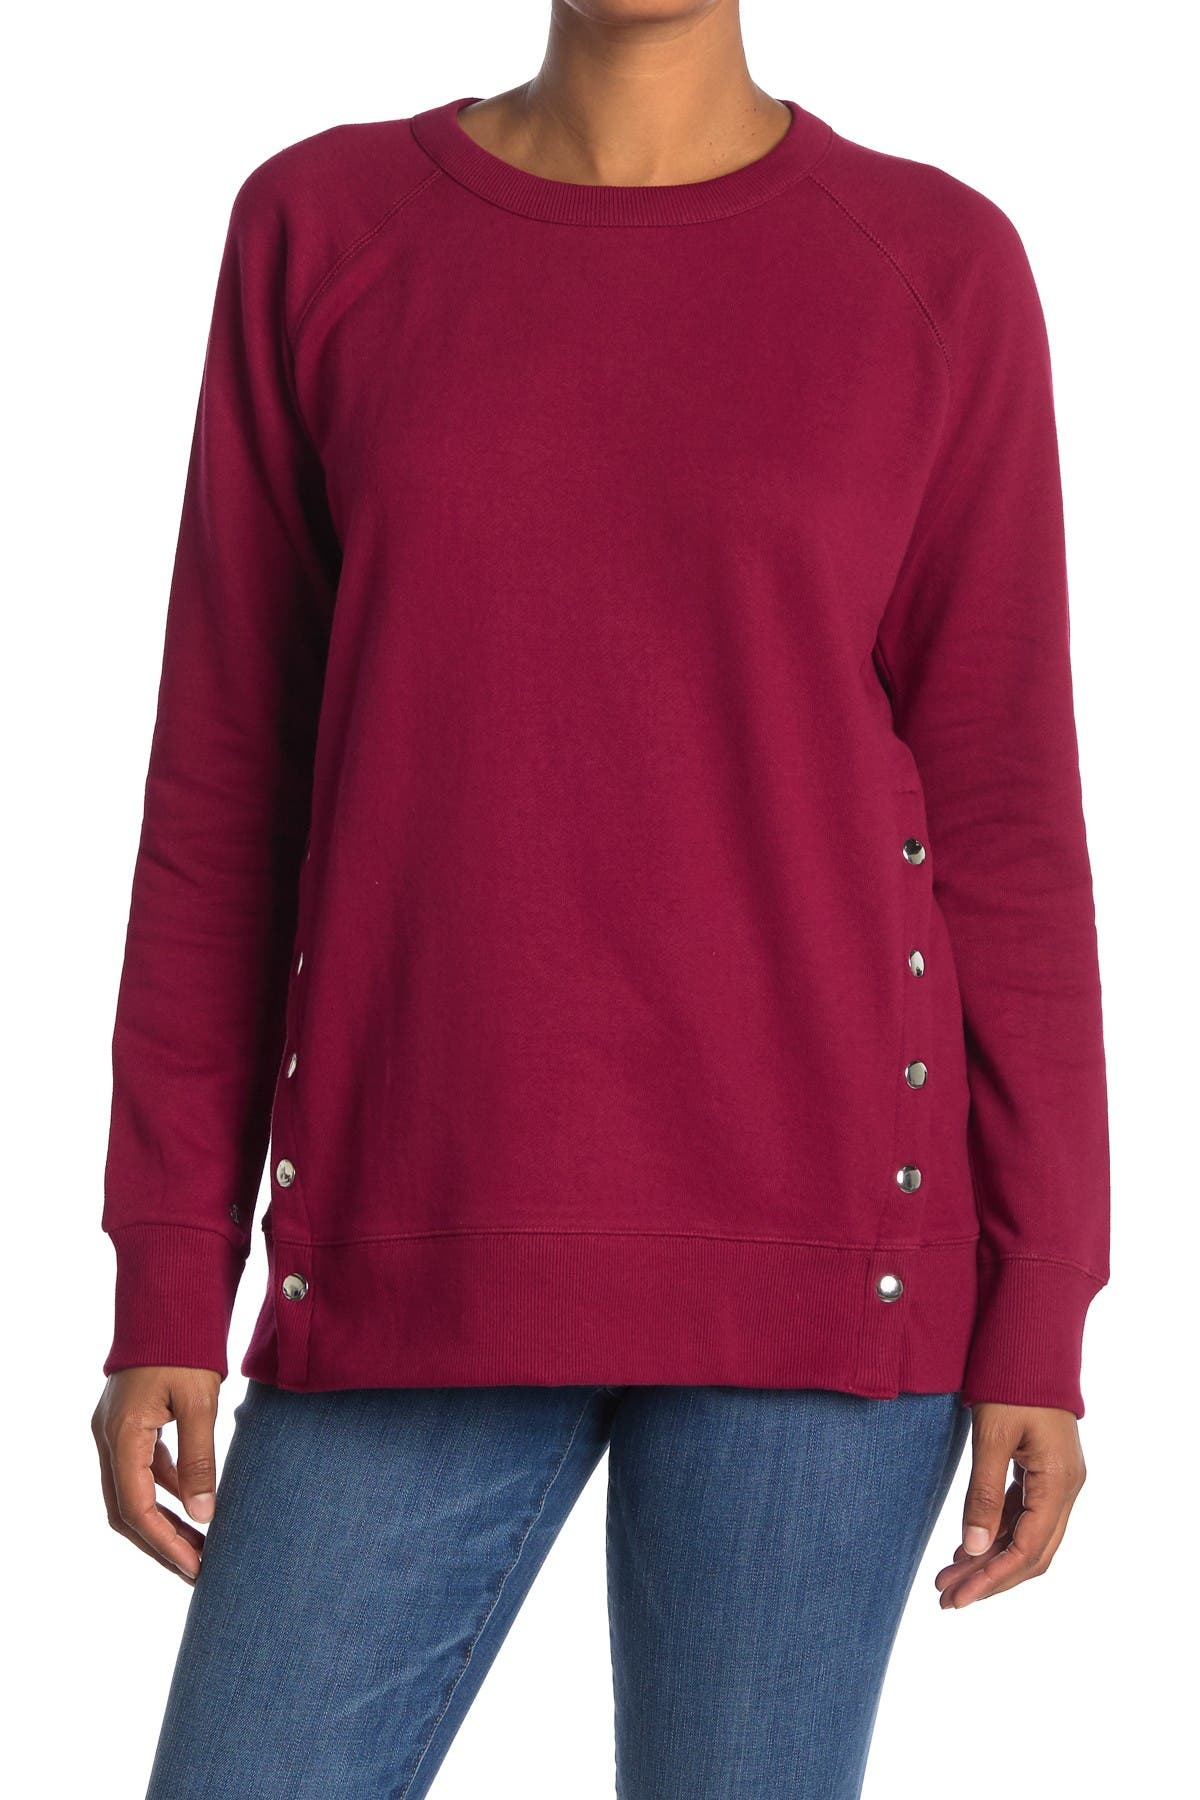 Image of JAG Jeans Kristen Snap Pullover Sweater